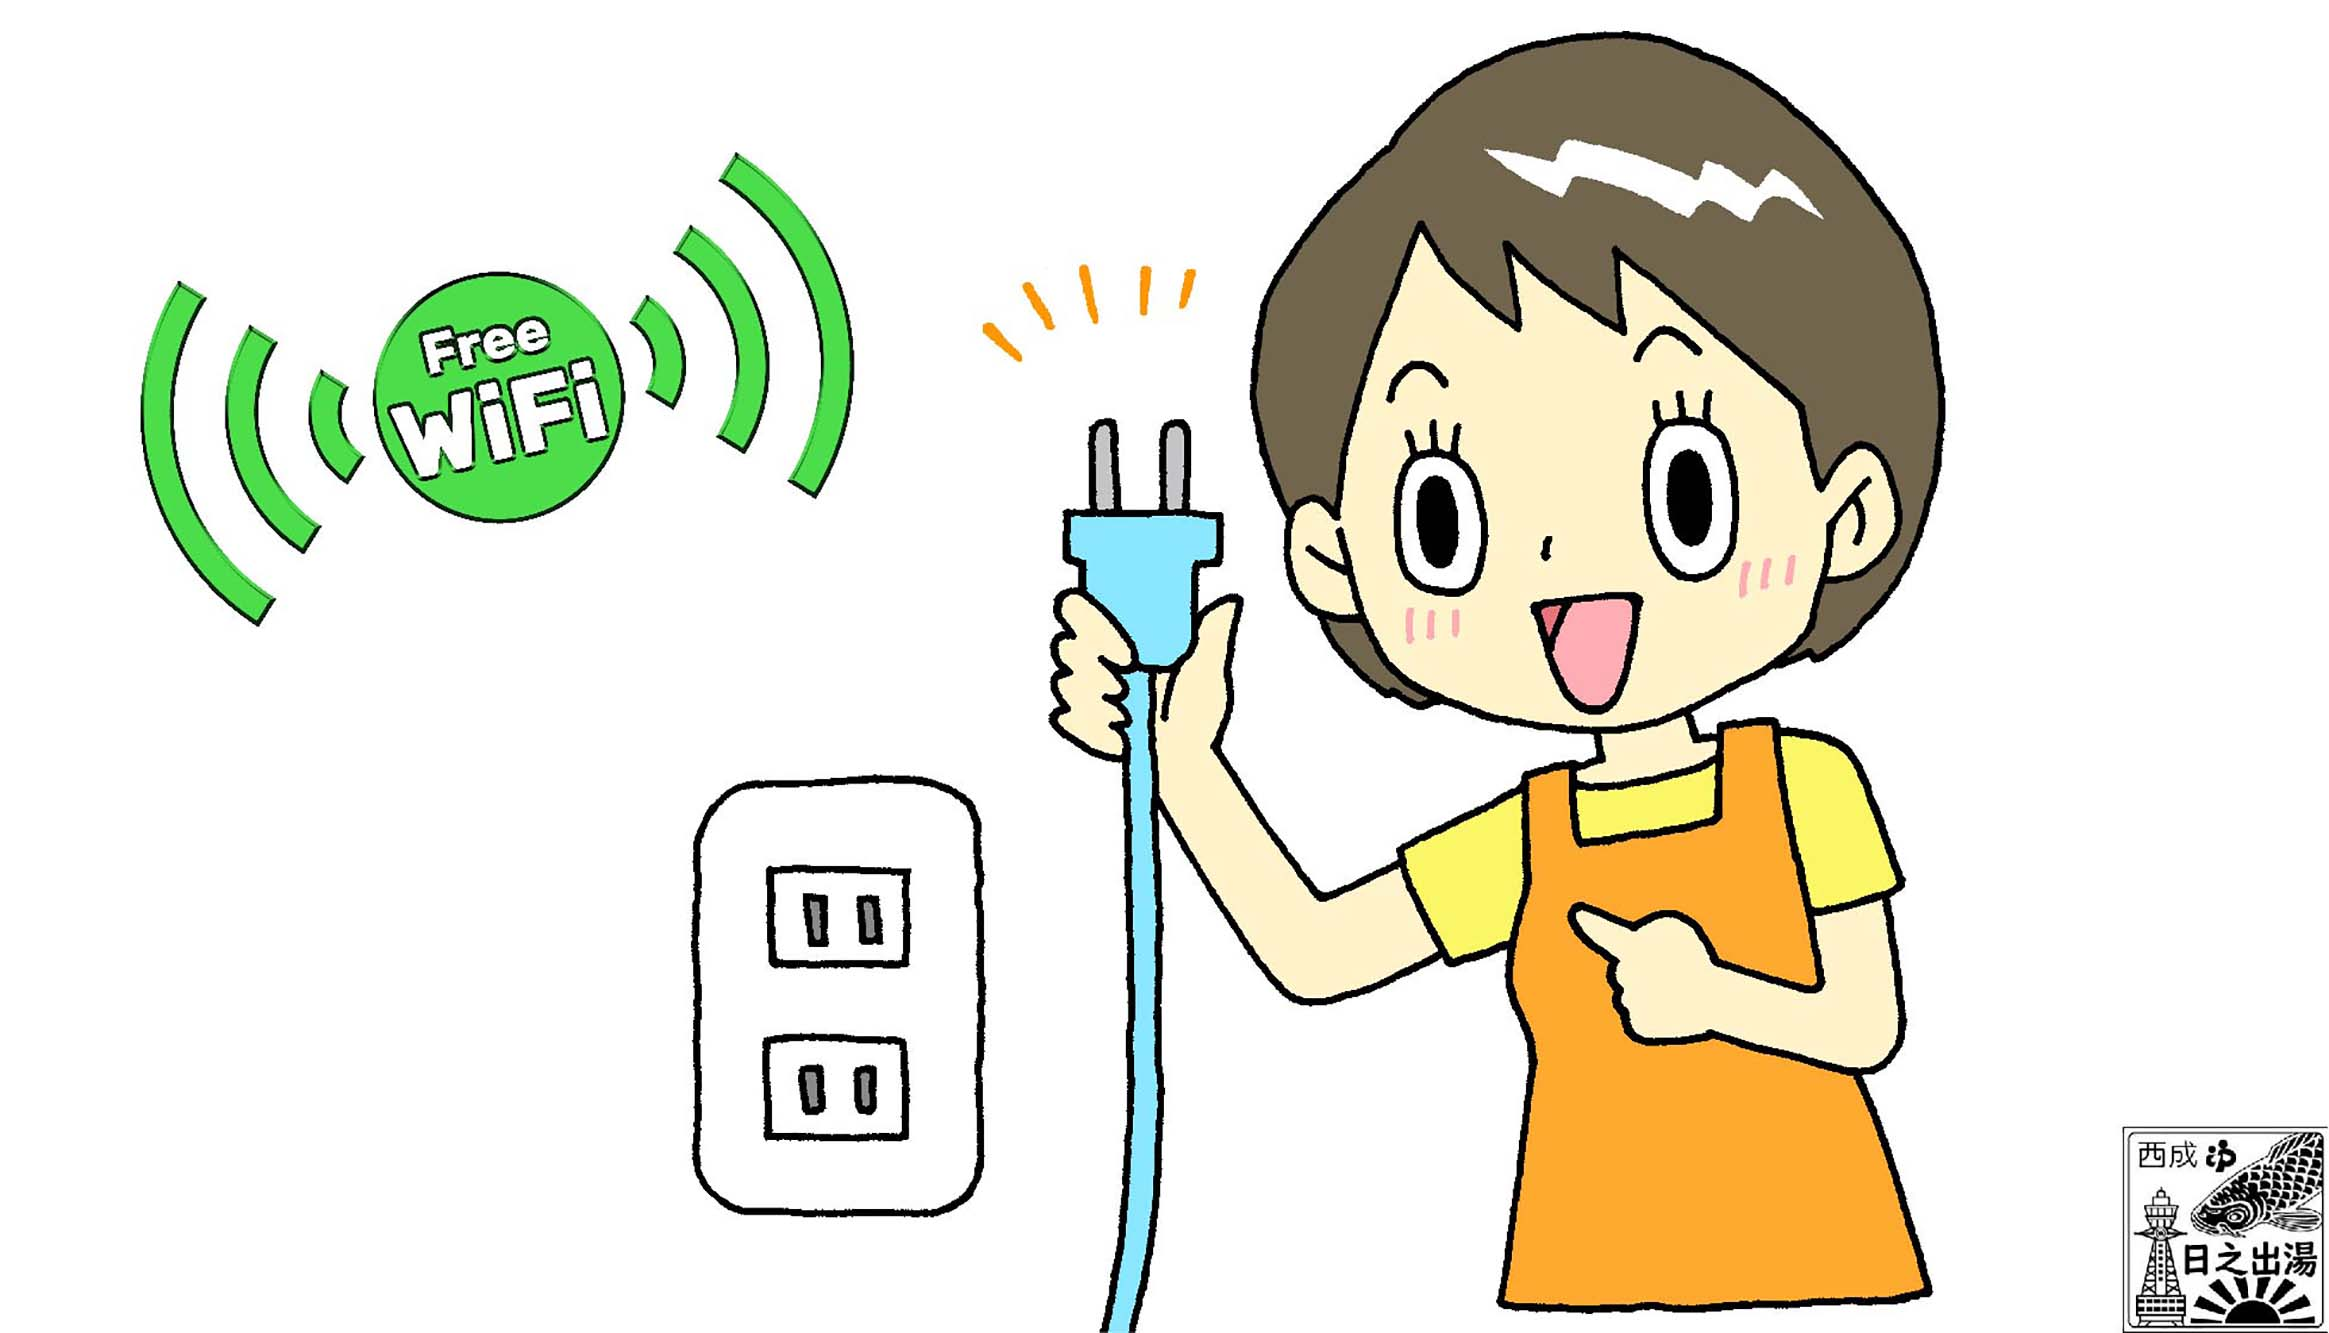 rental-of-free-wifi-and-power-supply-for-charging-1